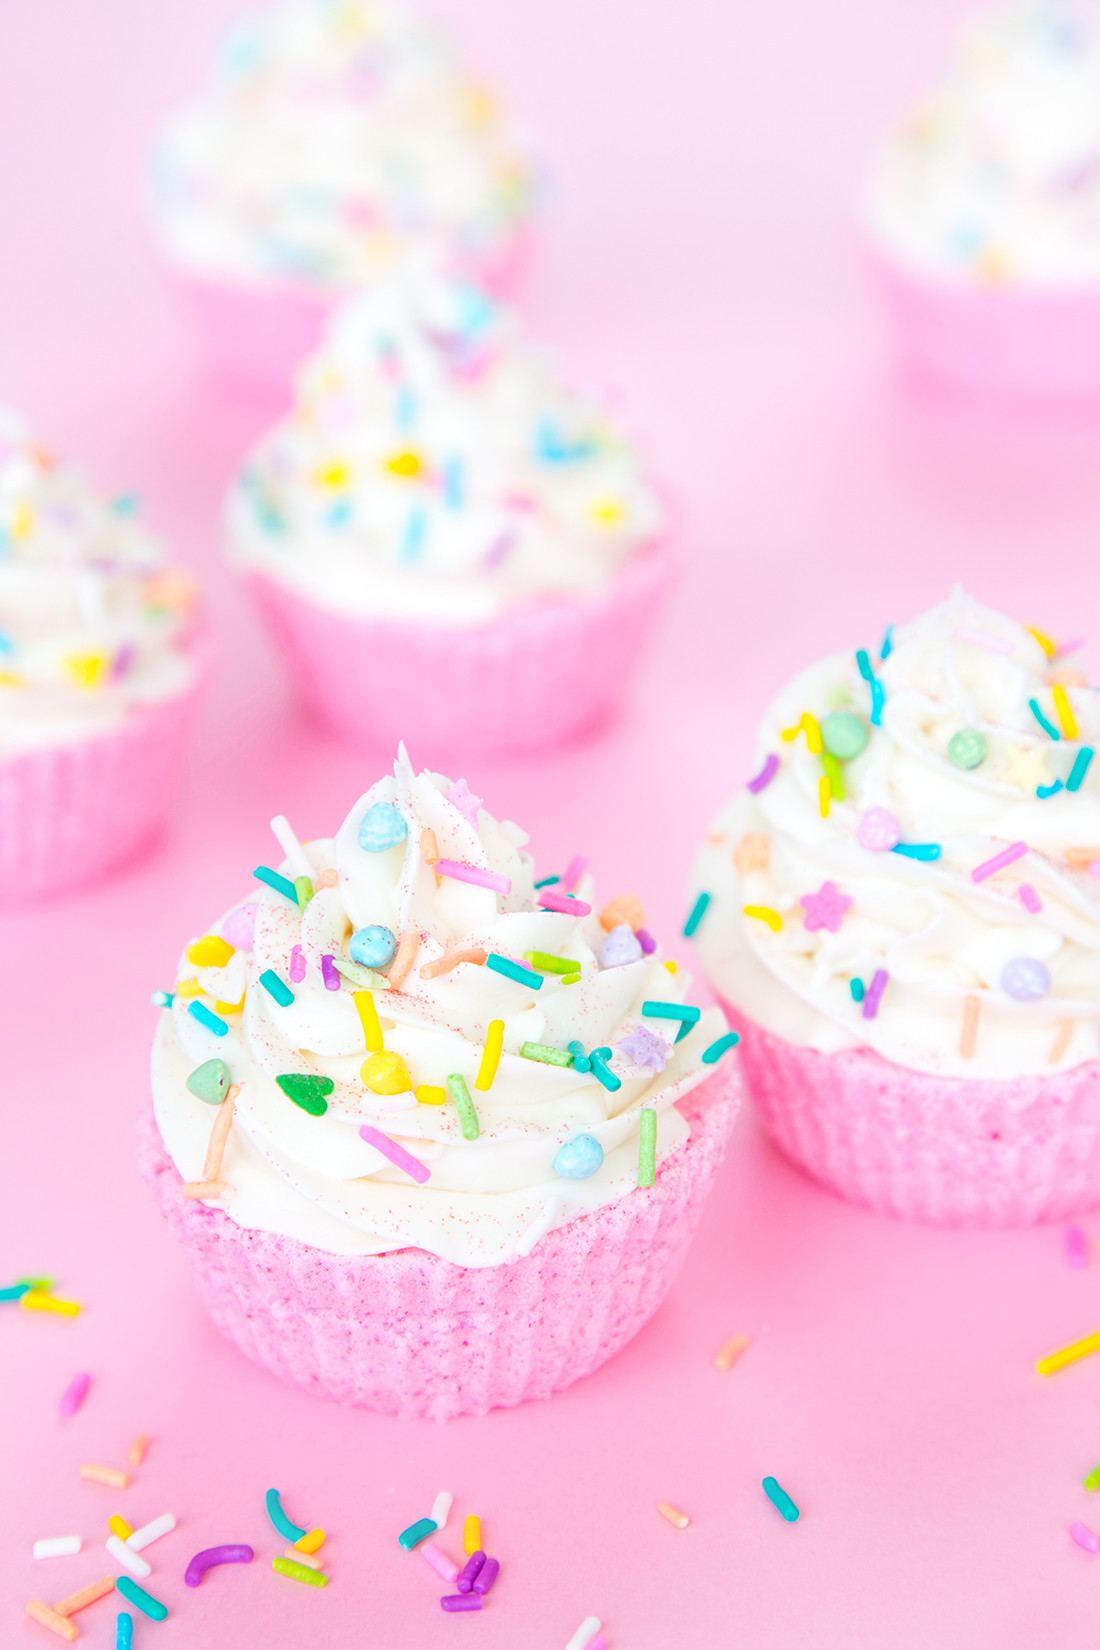 Best ideas about DIY Glitter Bomb . Save or Pin DIY Glitter Cupcake Bath Bombs Now.